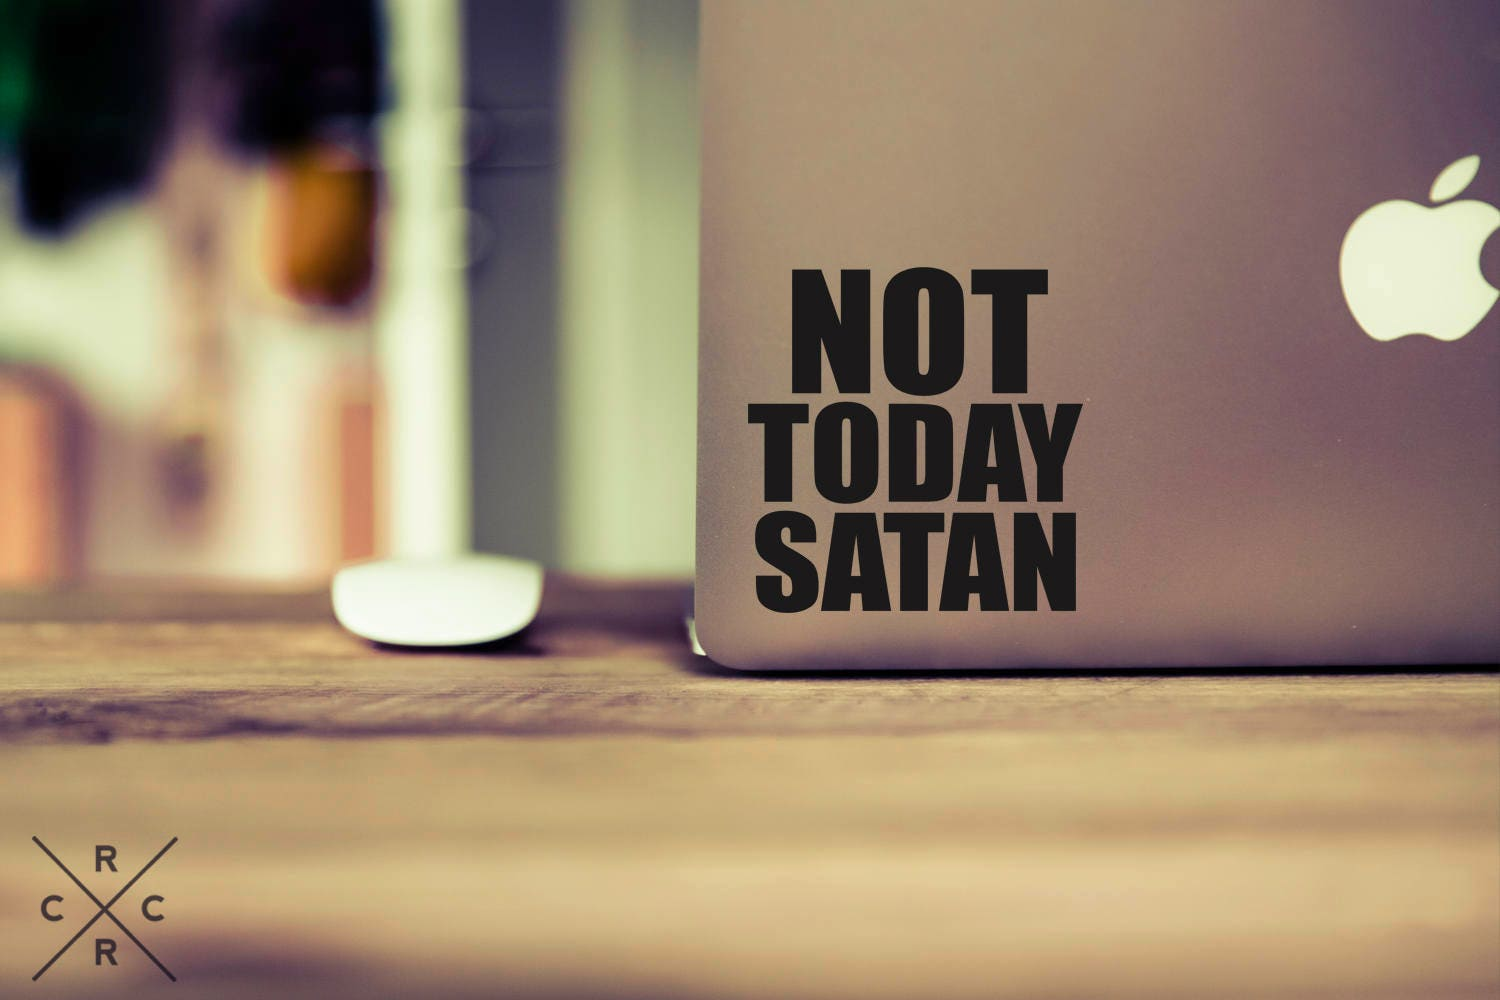 Not Today Satan Decal Funny Decals Funny Stickers Vinyl